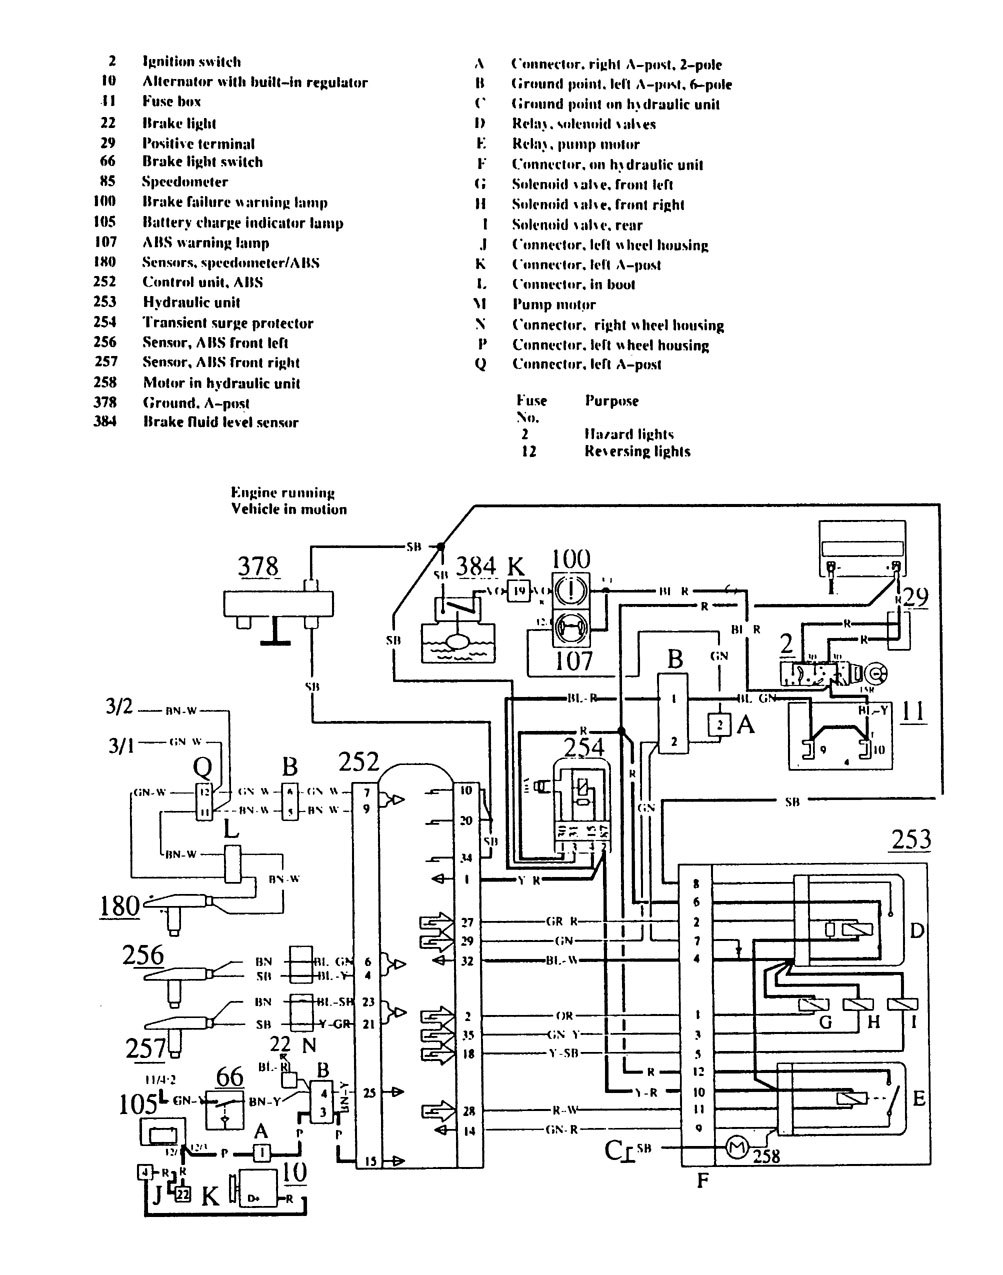 [TVPR_3874]  1990 Volvo 740 Wiring Diagram Diagram Base Website Wiring Diagram -  VENNDIAGRAMCOMPARING.SABINIDELTEVERE.IT | 1991 Volvo 740 Wiring Diagrams |  | Diagram Base Website Full Edition - sabinideltevere